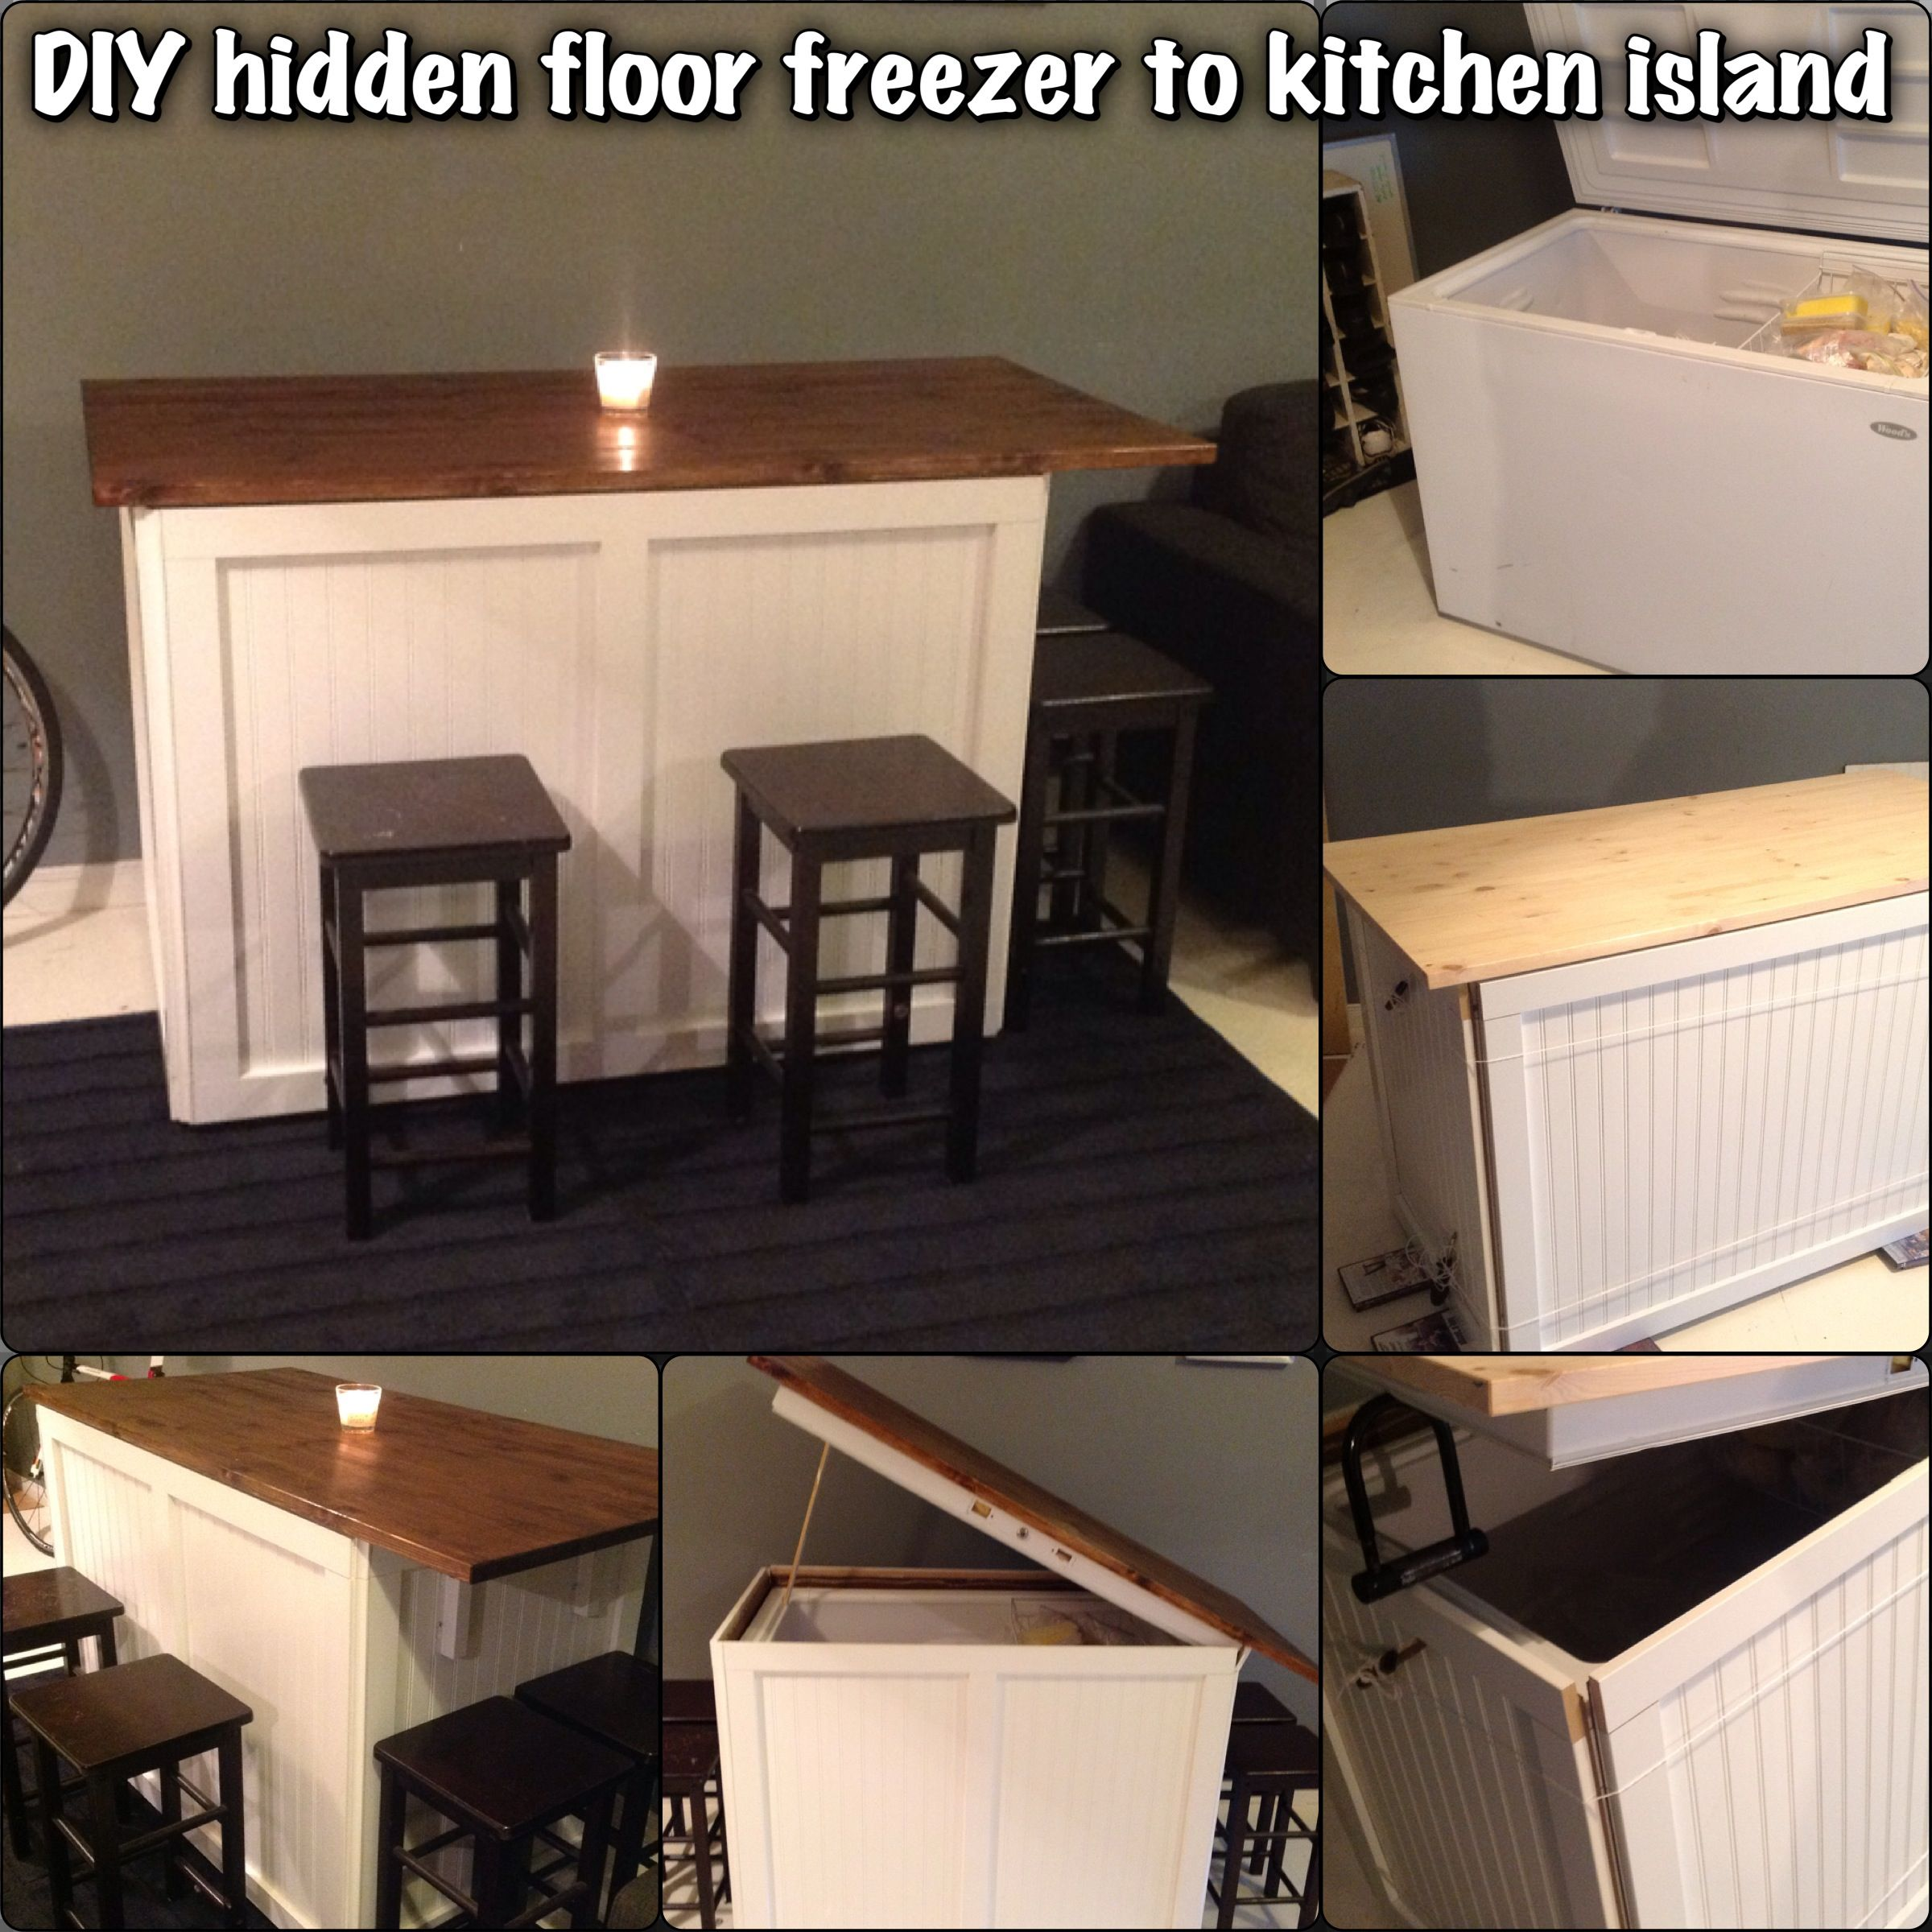 Kitchen Island floor freezer This is a